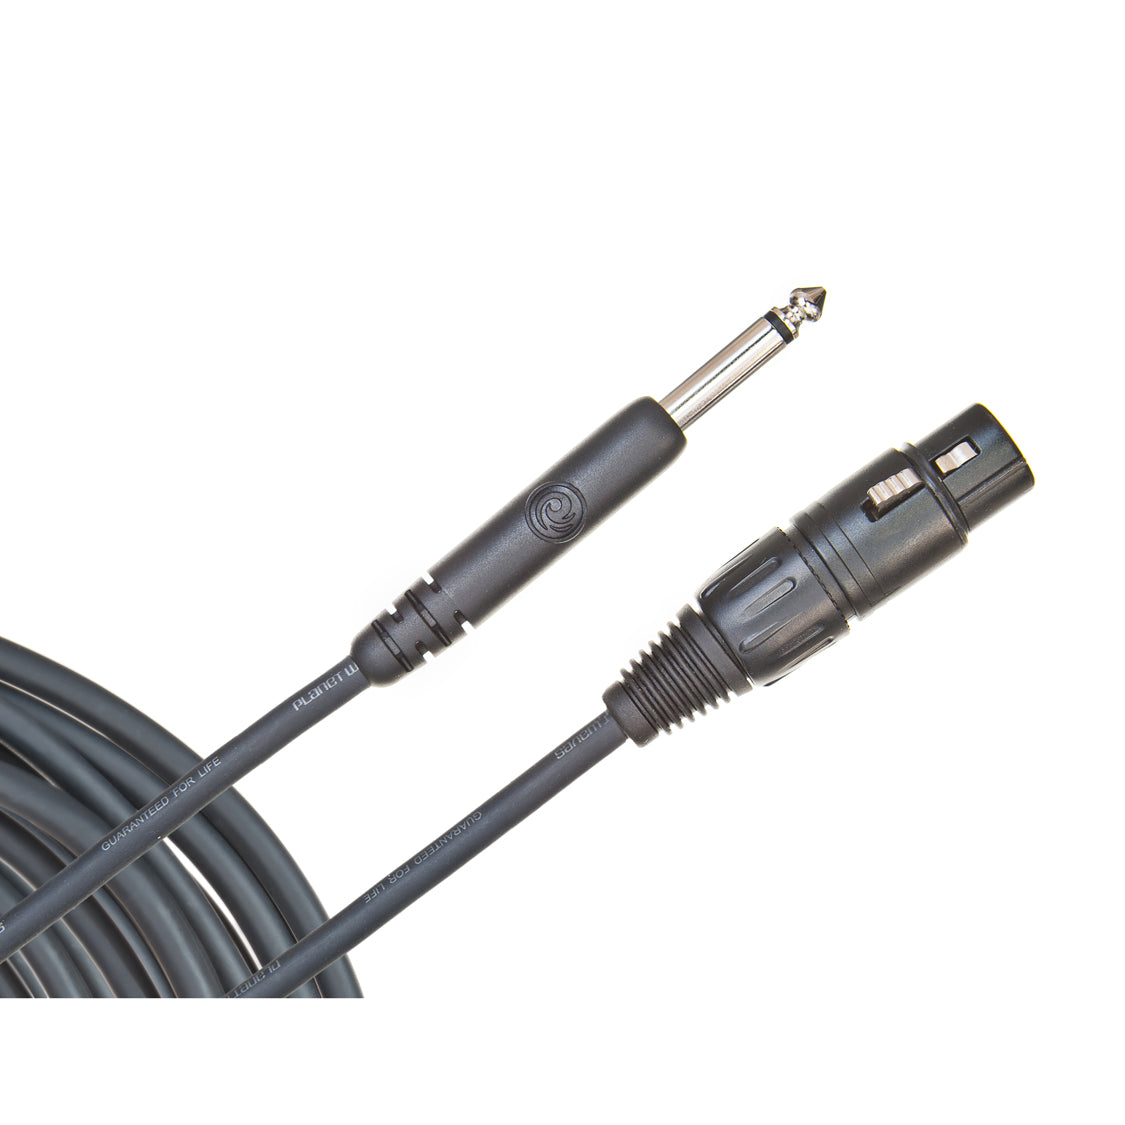 D'Addario Classic Series Unbalanced Microphone Cable XLR-to-1/4-inch 25 feet